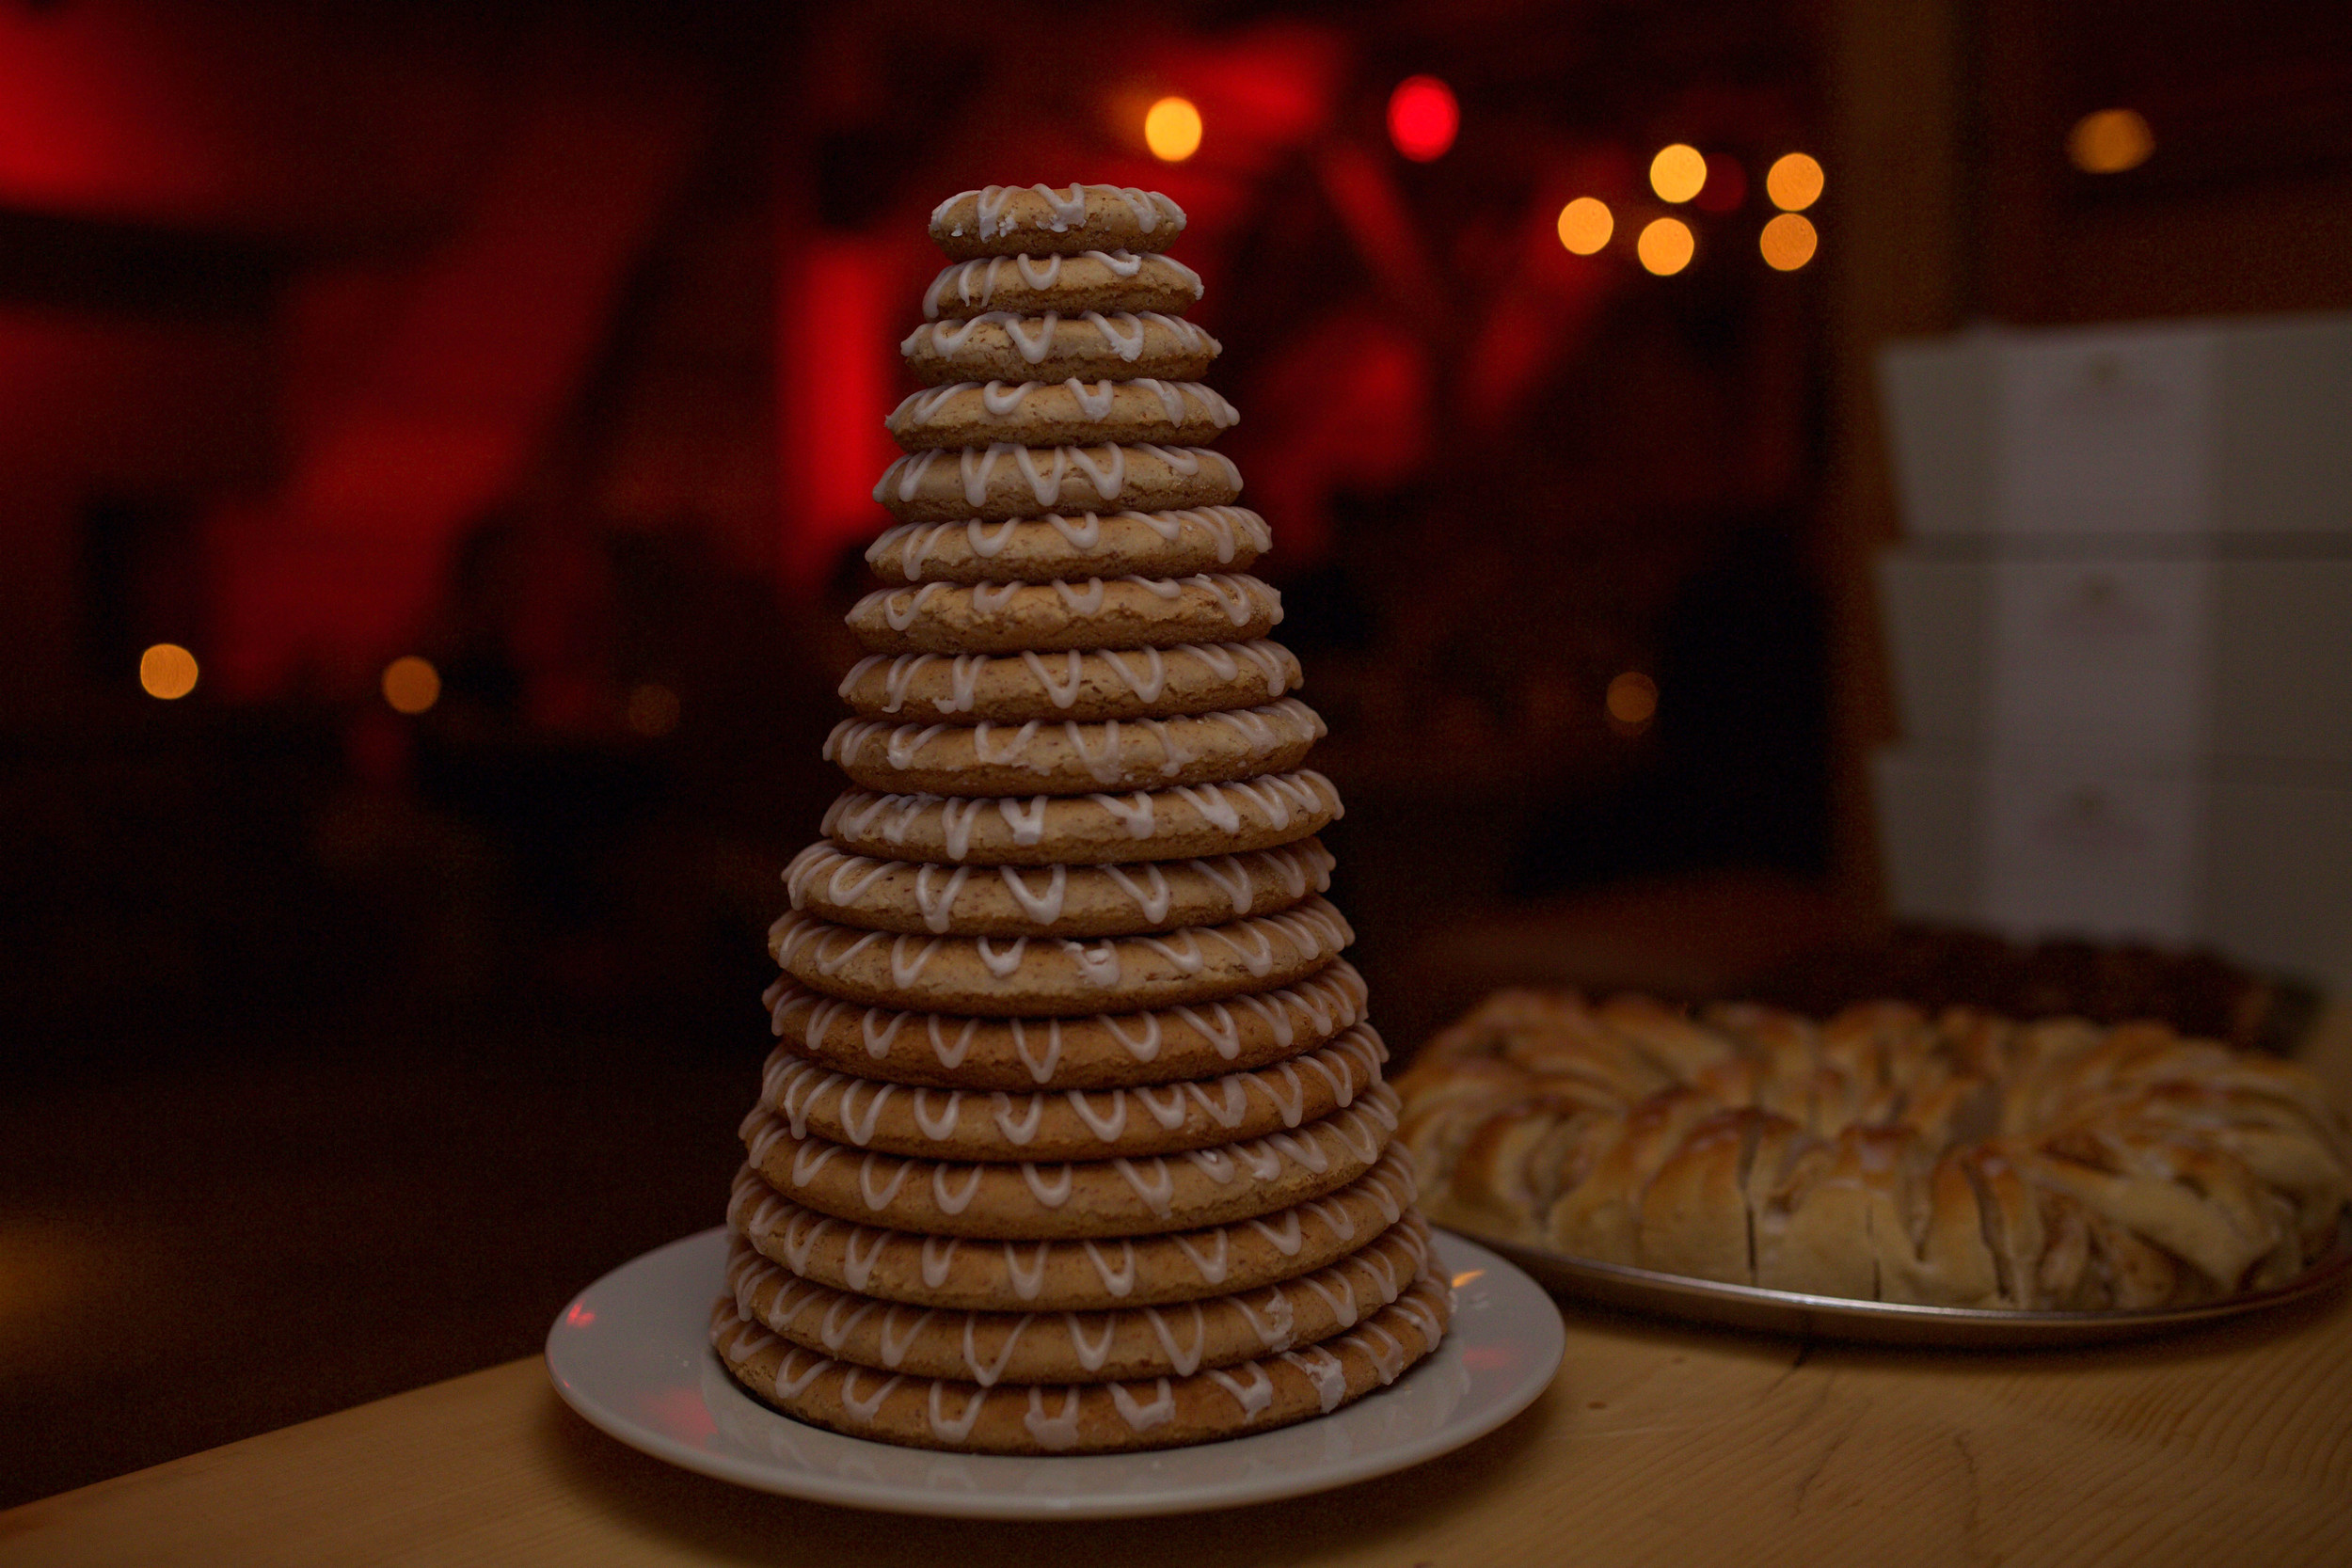 traditional Norwegian wedding cake called a  kransekage (wreath cake) and is made of stacks of danish. YUMM!